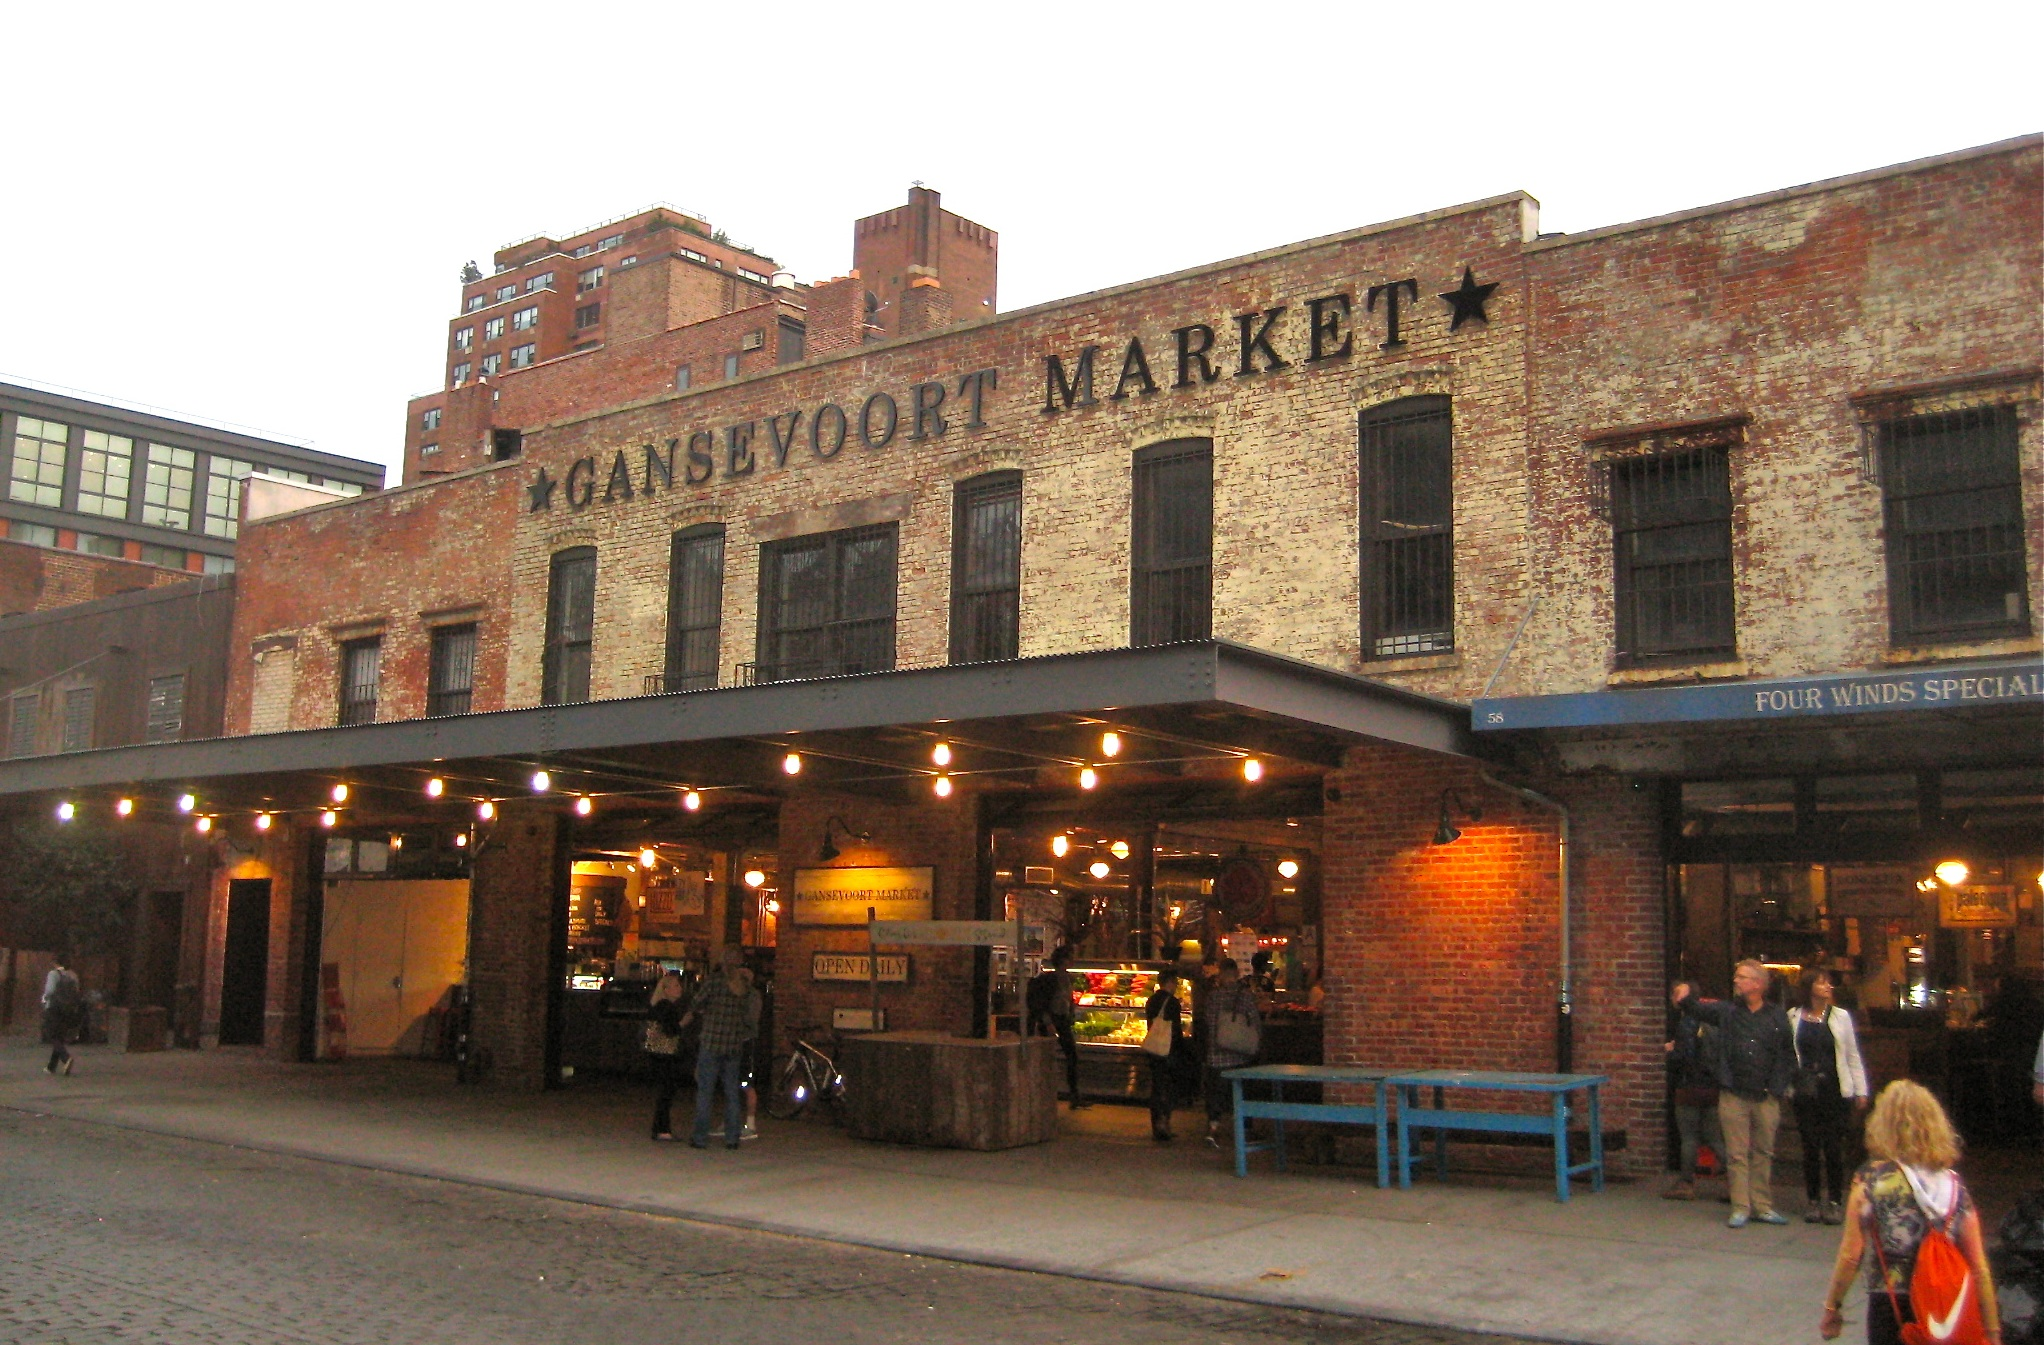 Gansevoort Market visiting the 1884 original gansevoort market | ephemeral new york